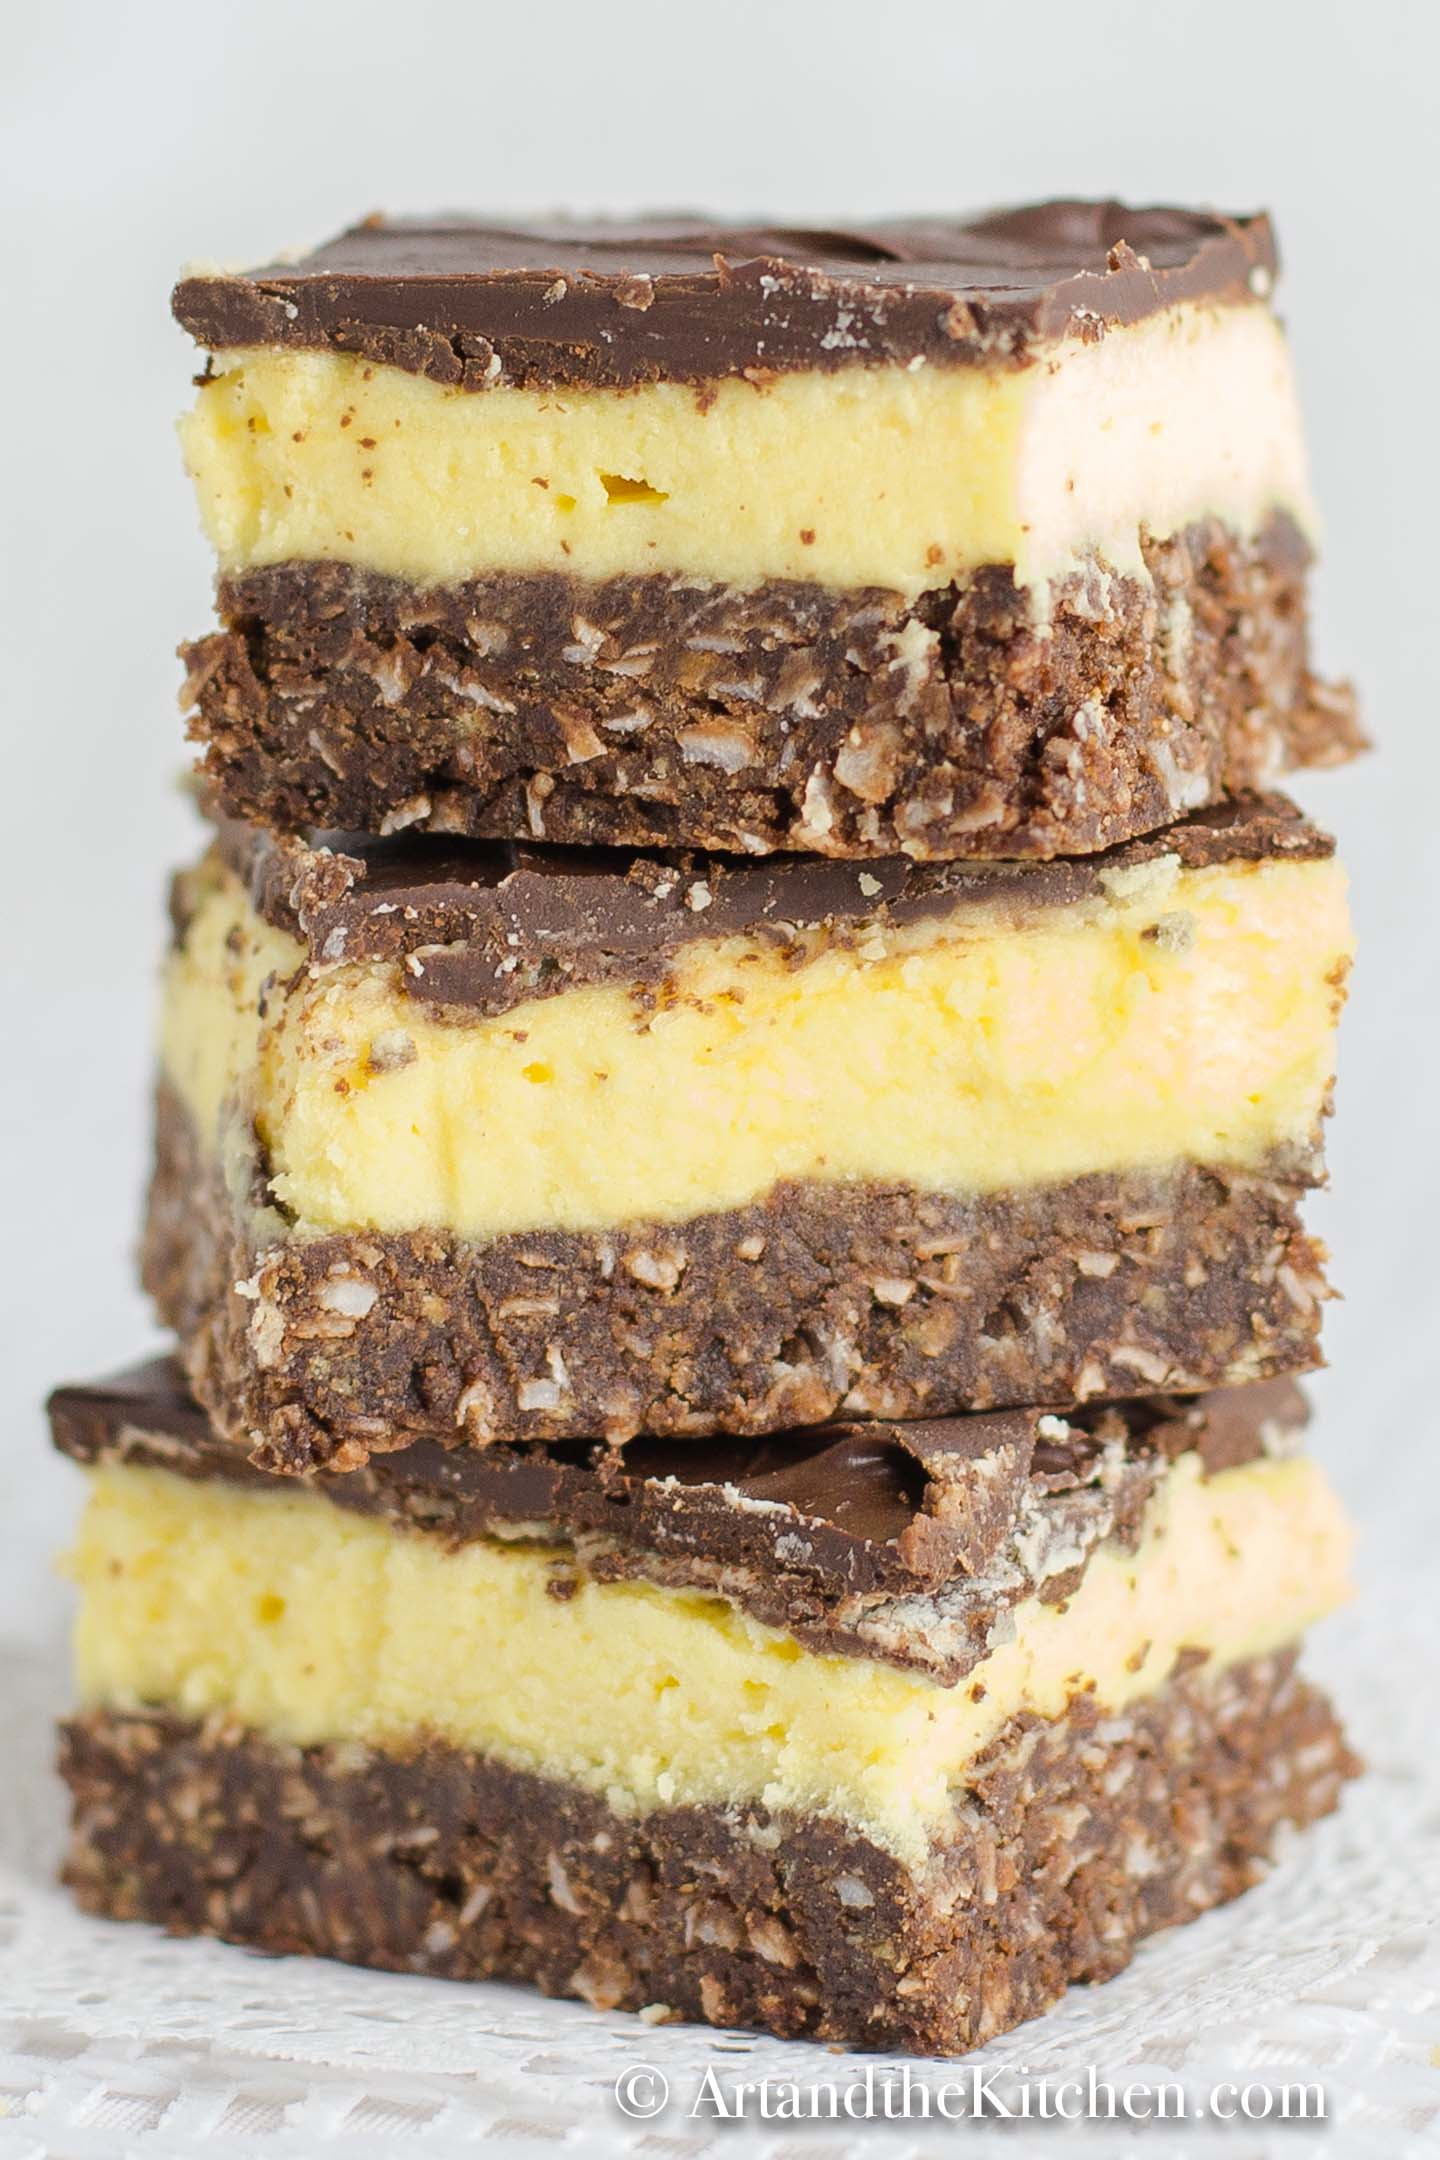 Stack of squares that have layers of chocolate, yellow custard and chocolate coconut crust.